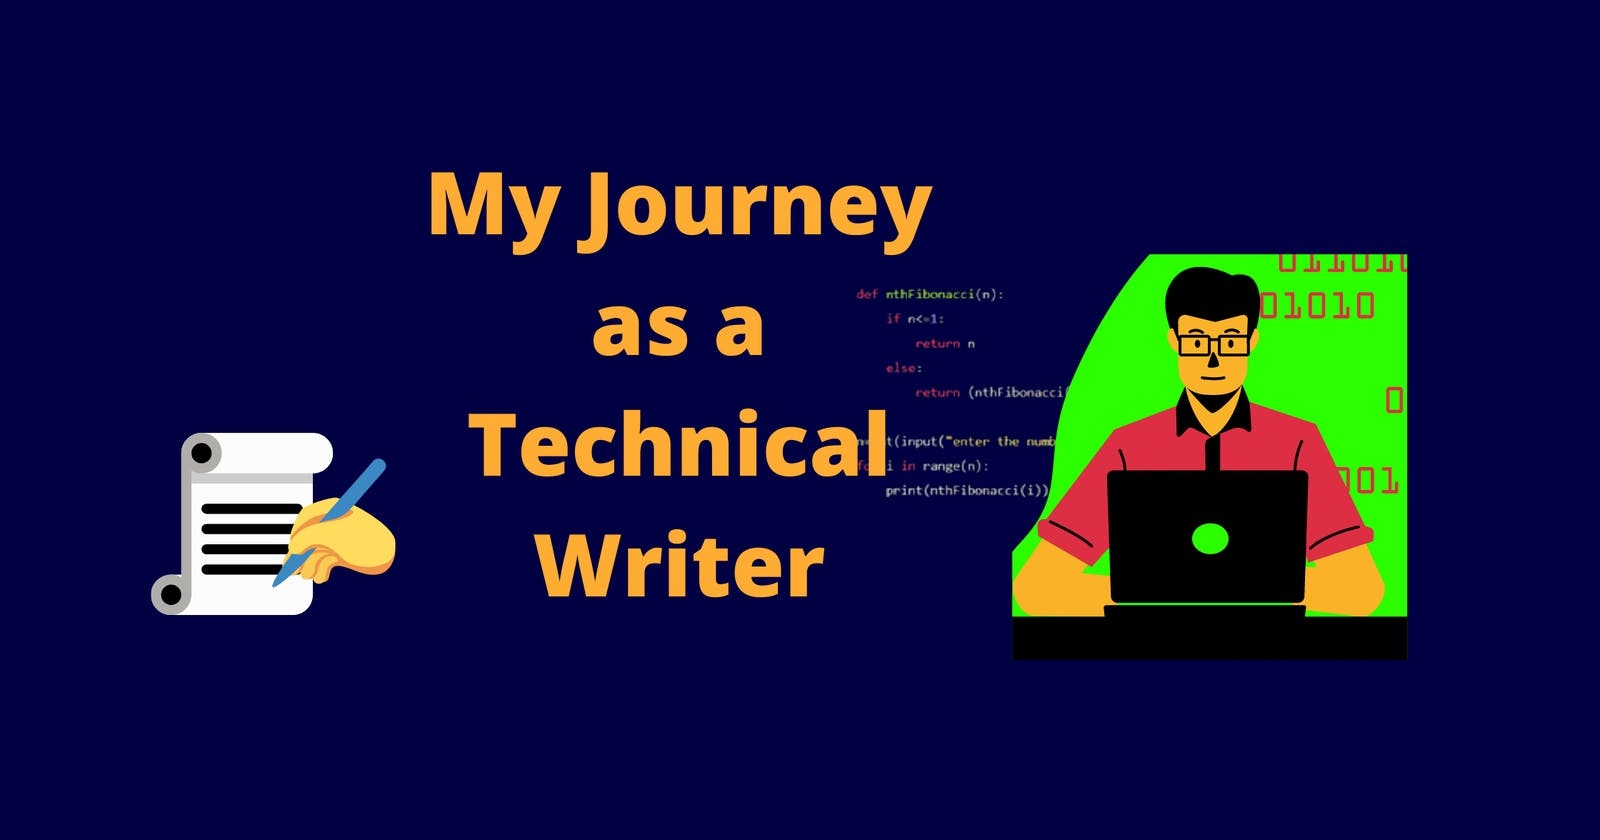 My Journey as a Technical Writer.